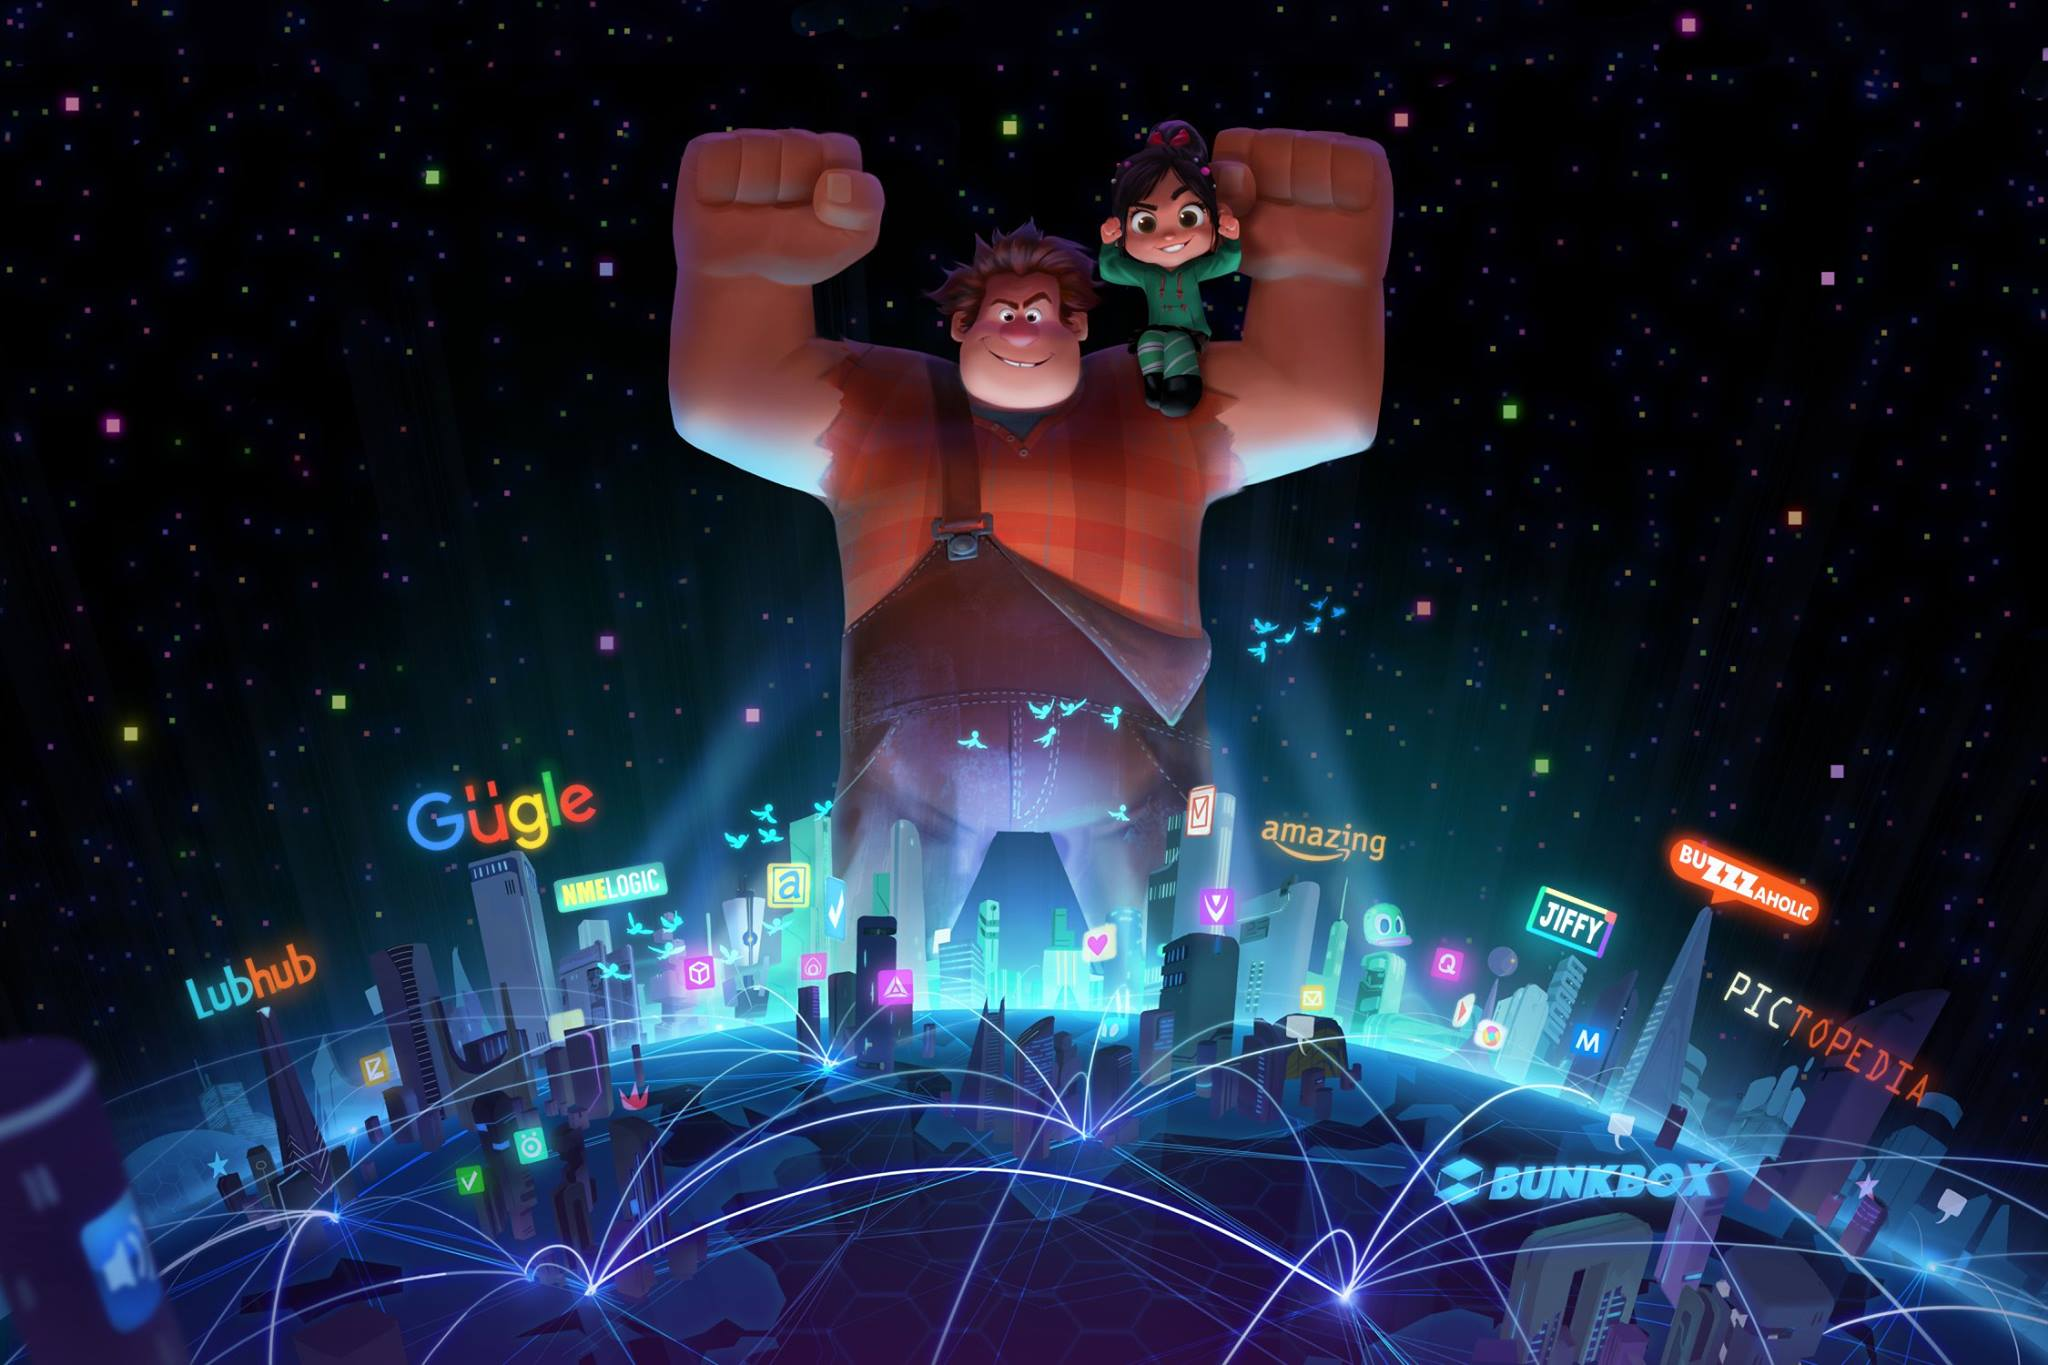 Wreck It Ralph 2 Will Bring The Disney Princesses Together Collider